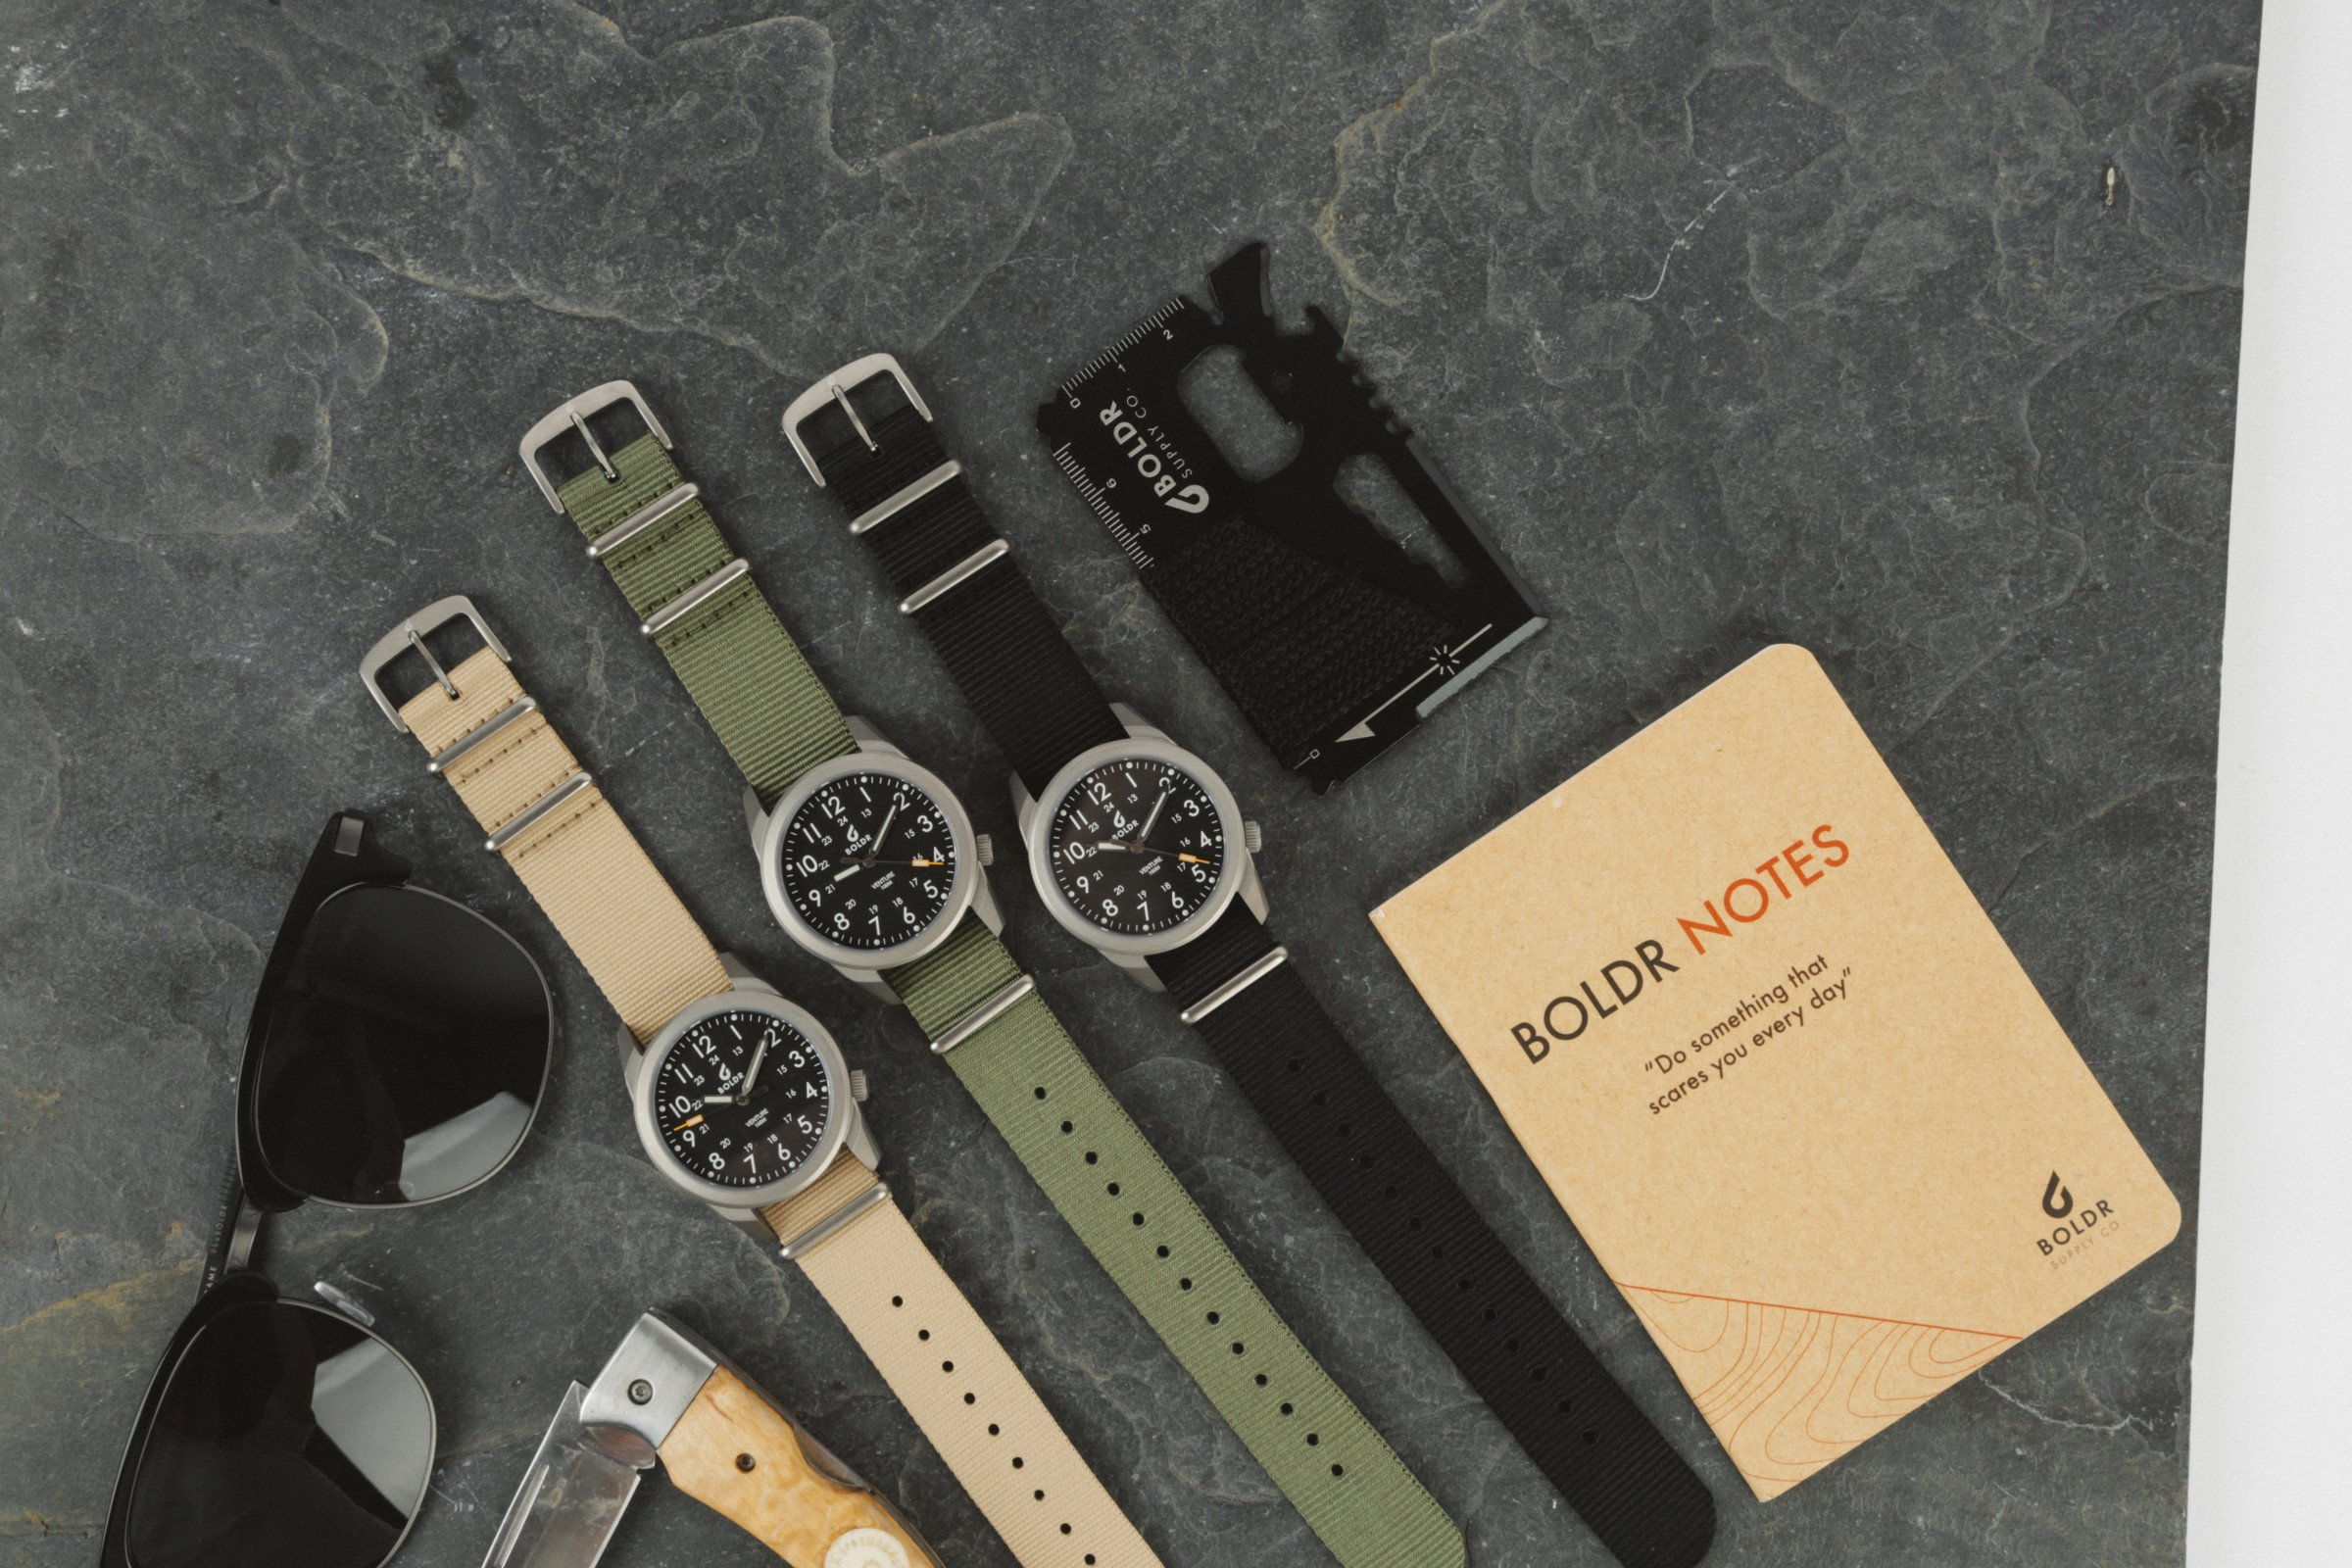 BOLDR Cheap Military Watch